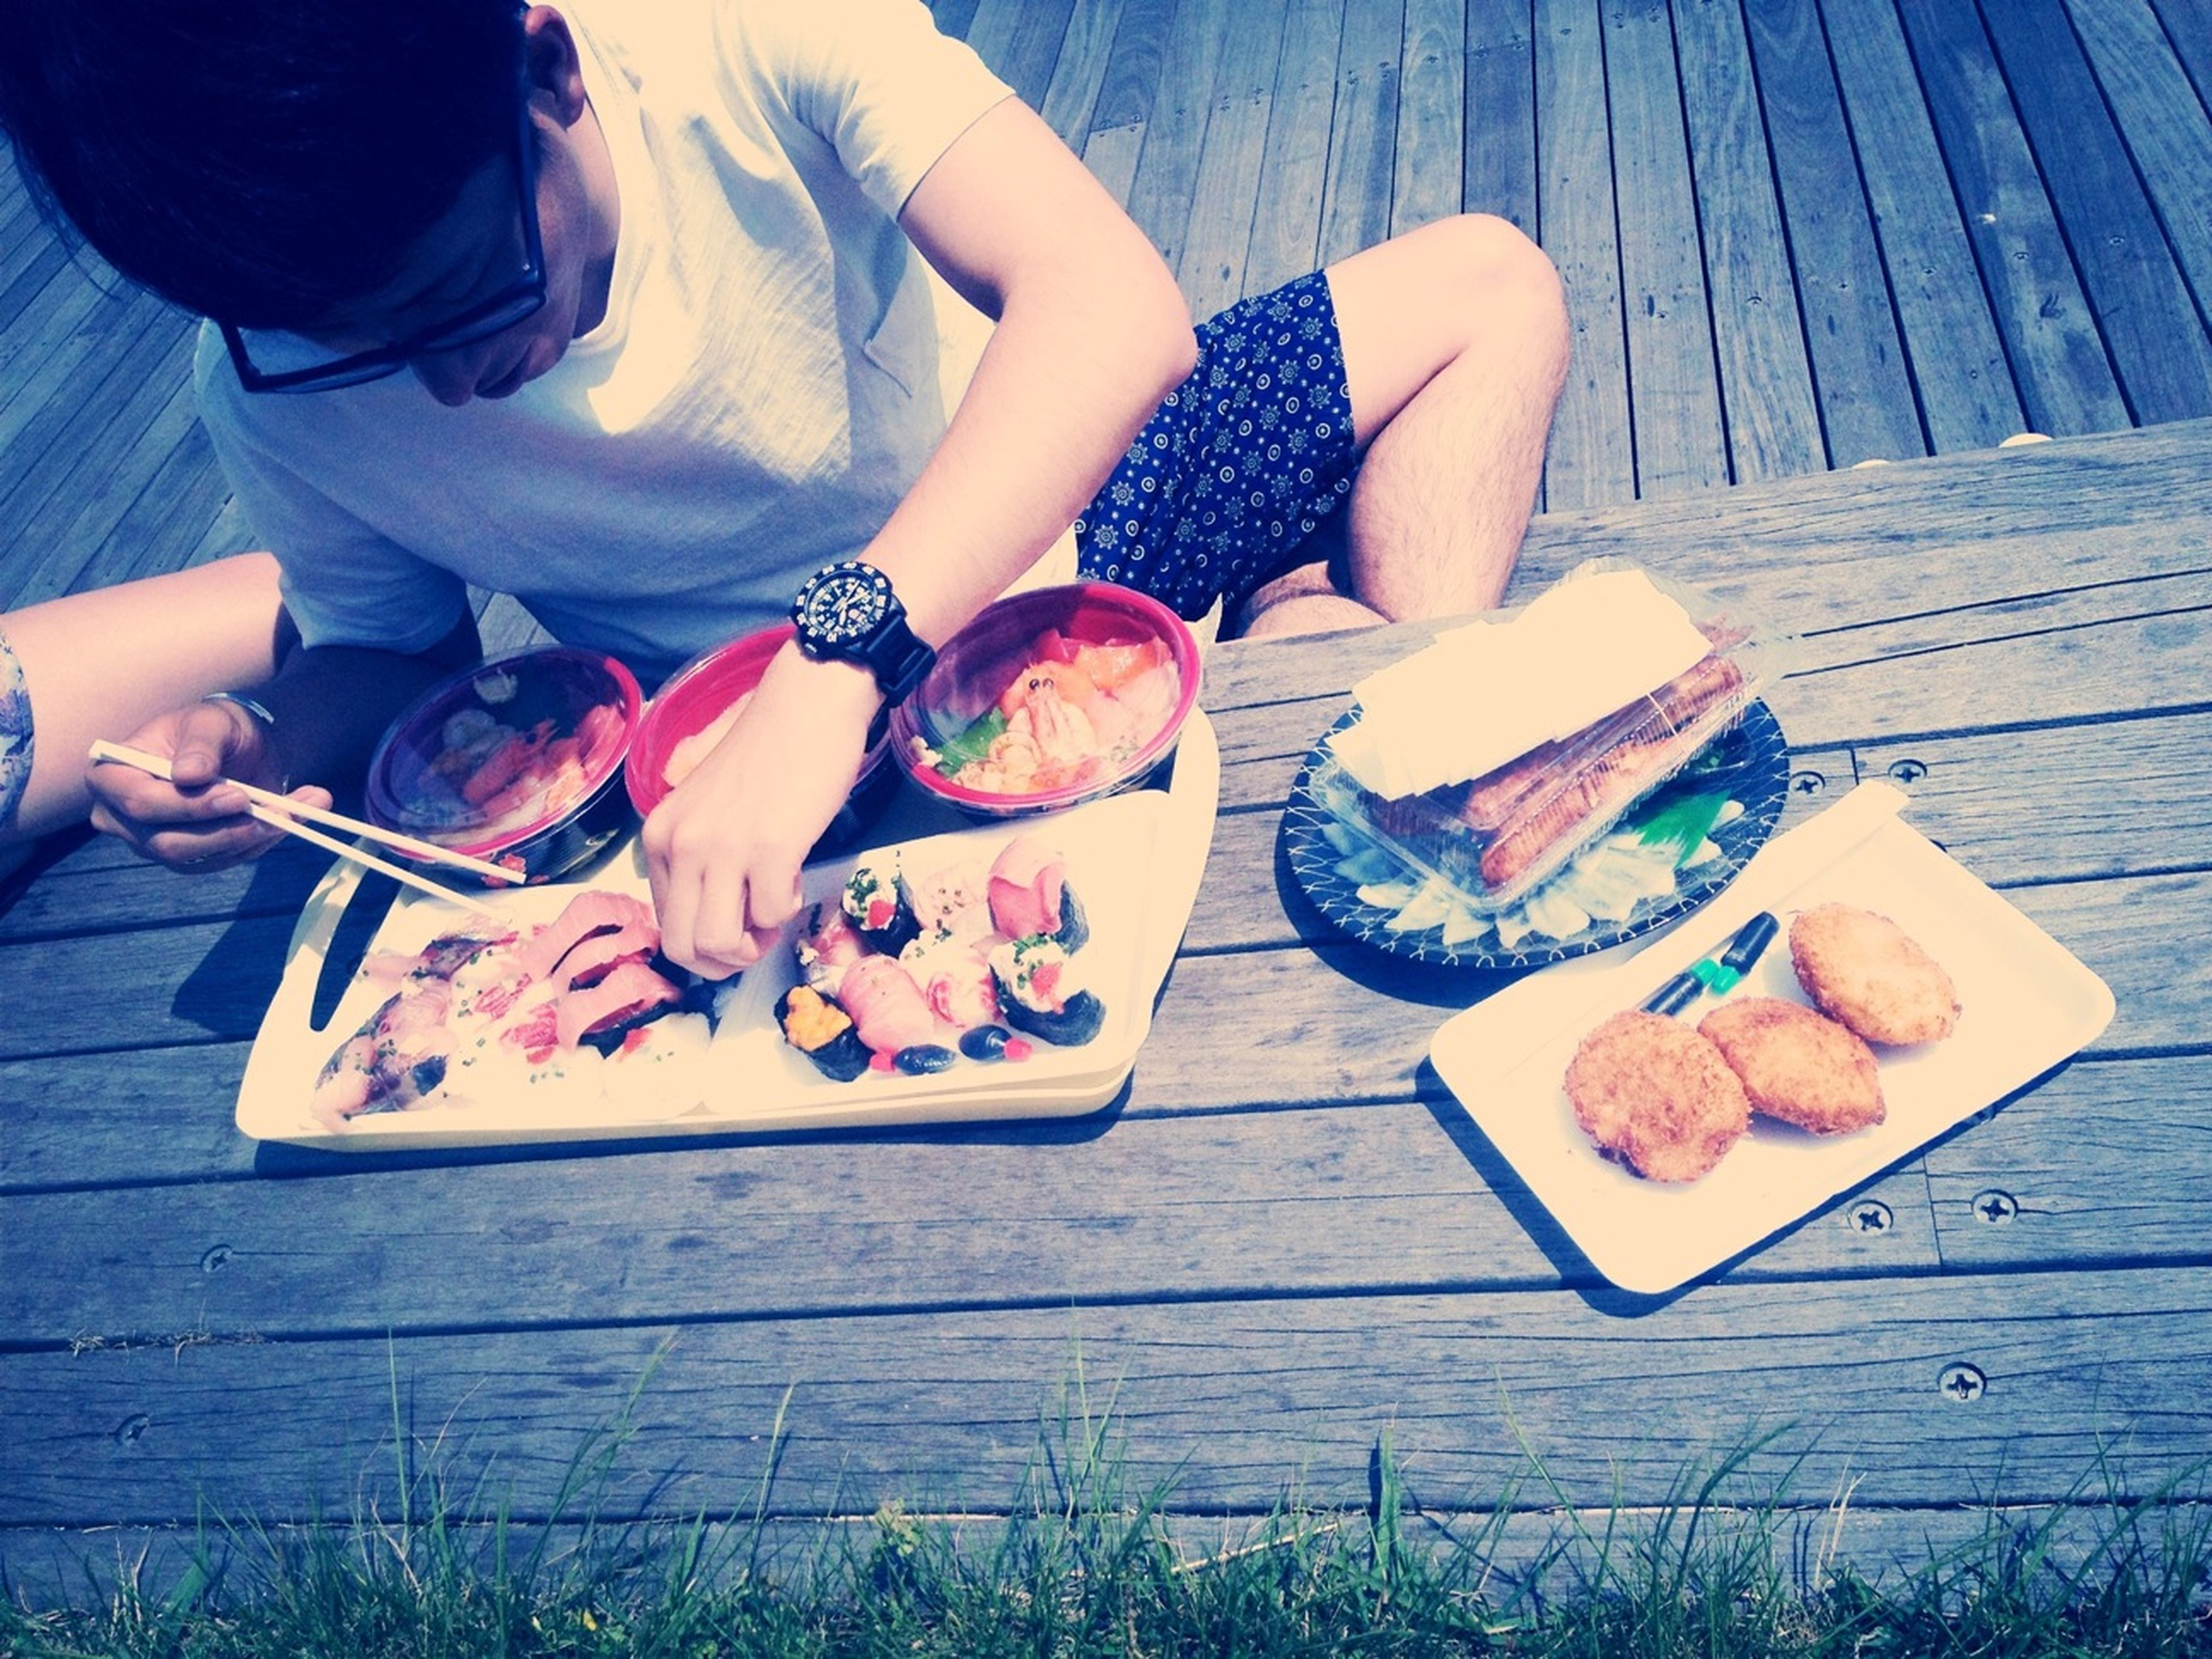 food and drink, lifestyles, table, leisure activity, person, food, high angle view, freshness, wood - material, sitting, love, togetherness, day, friendship, standing, holding, bonding